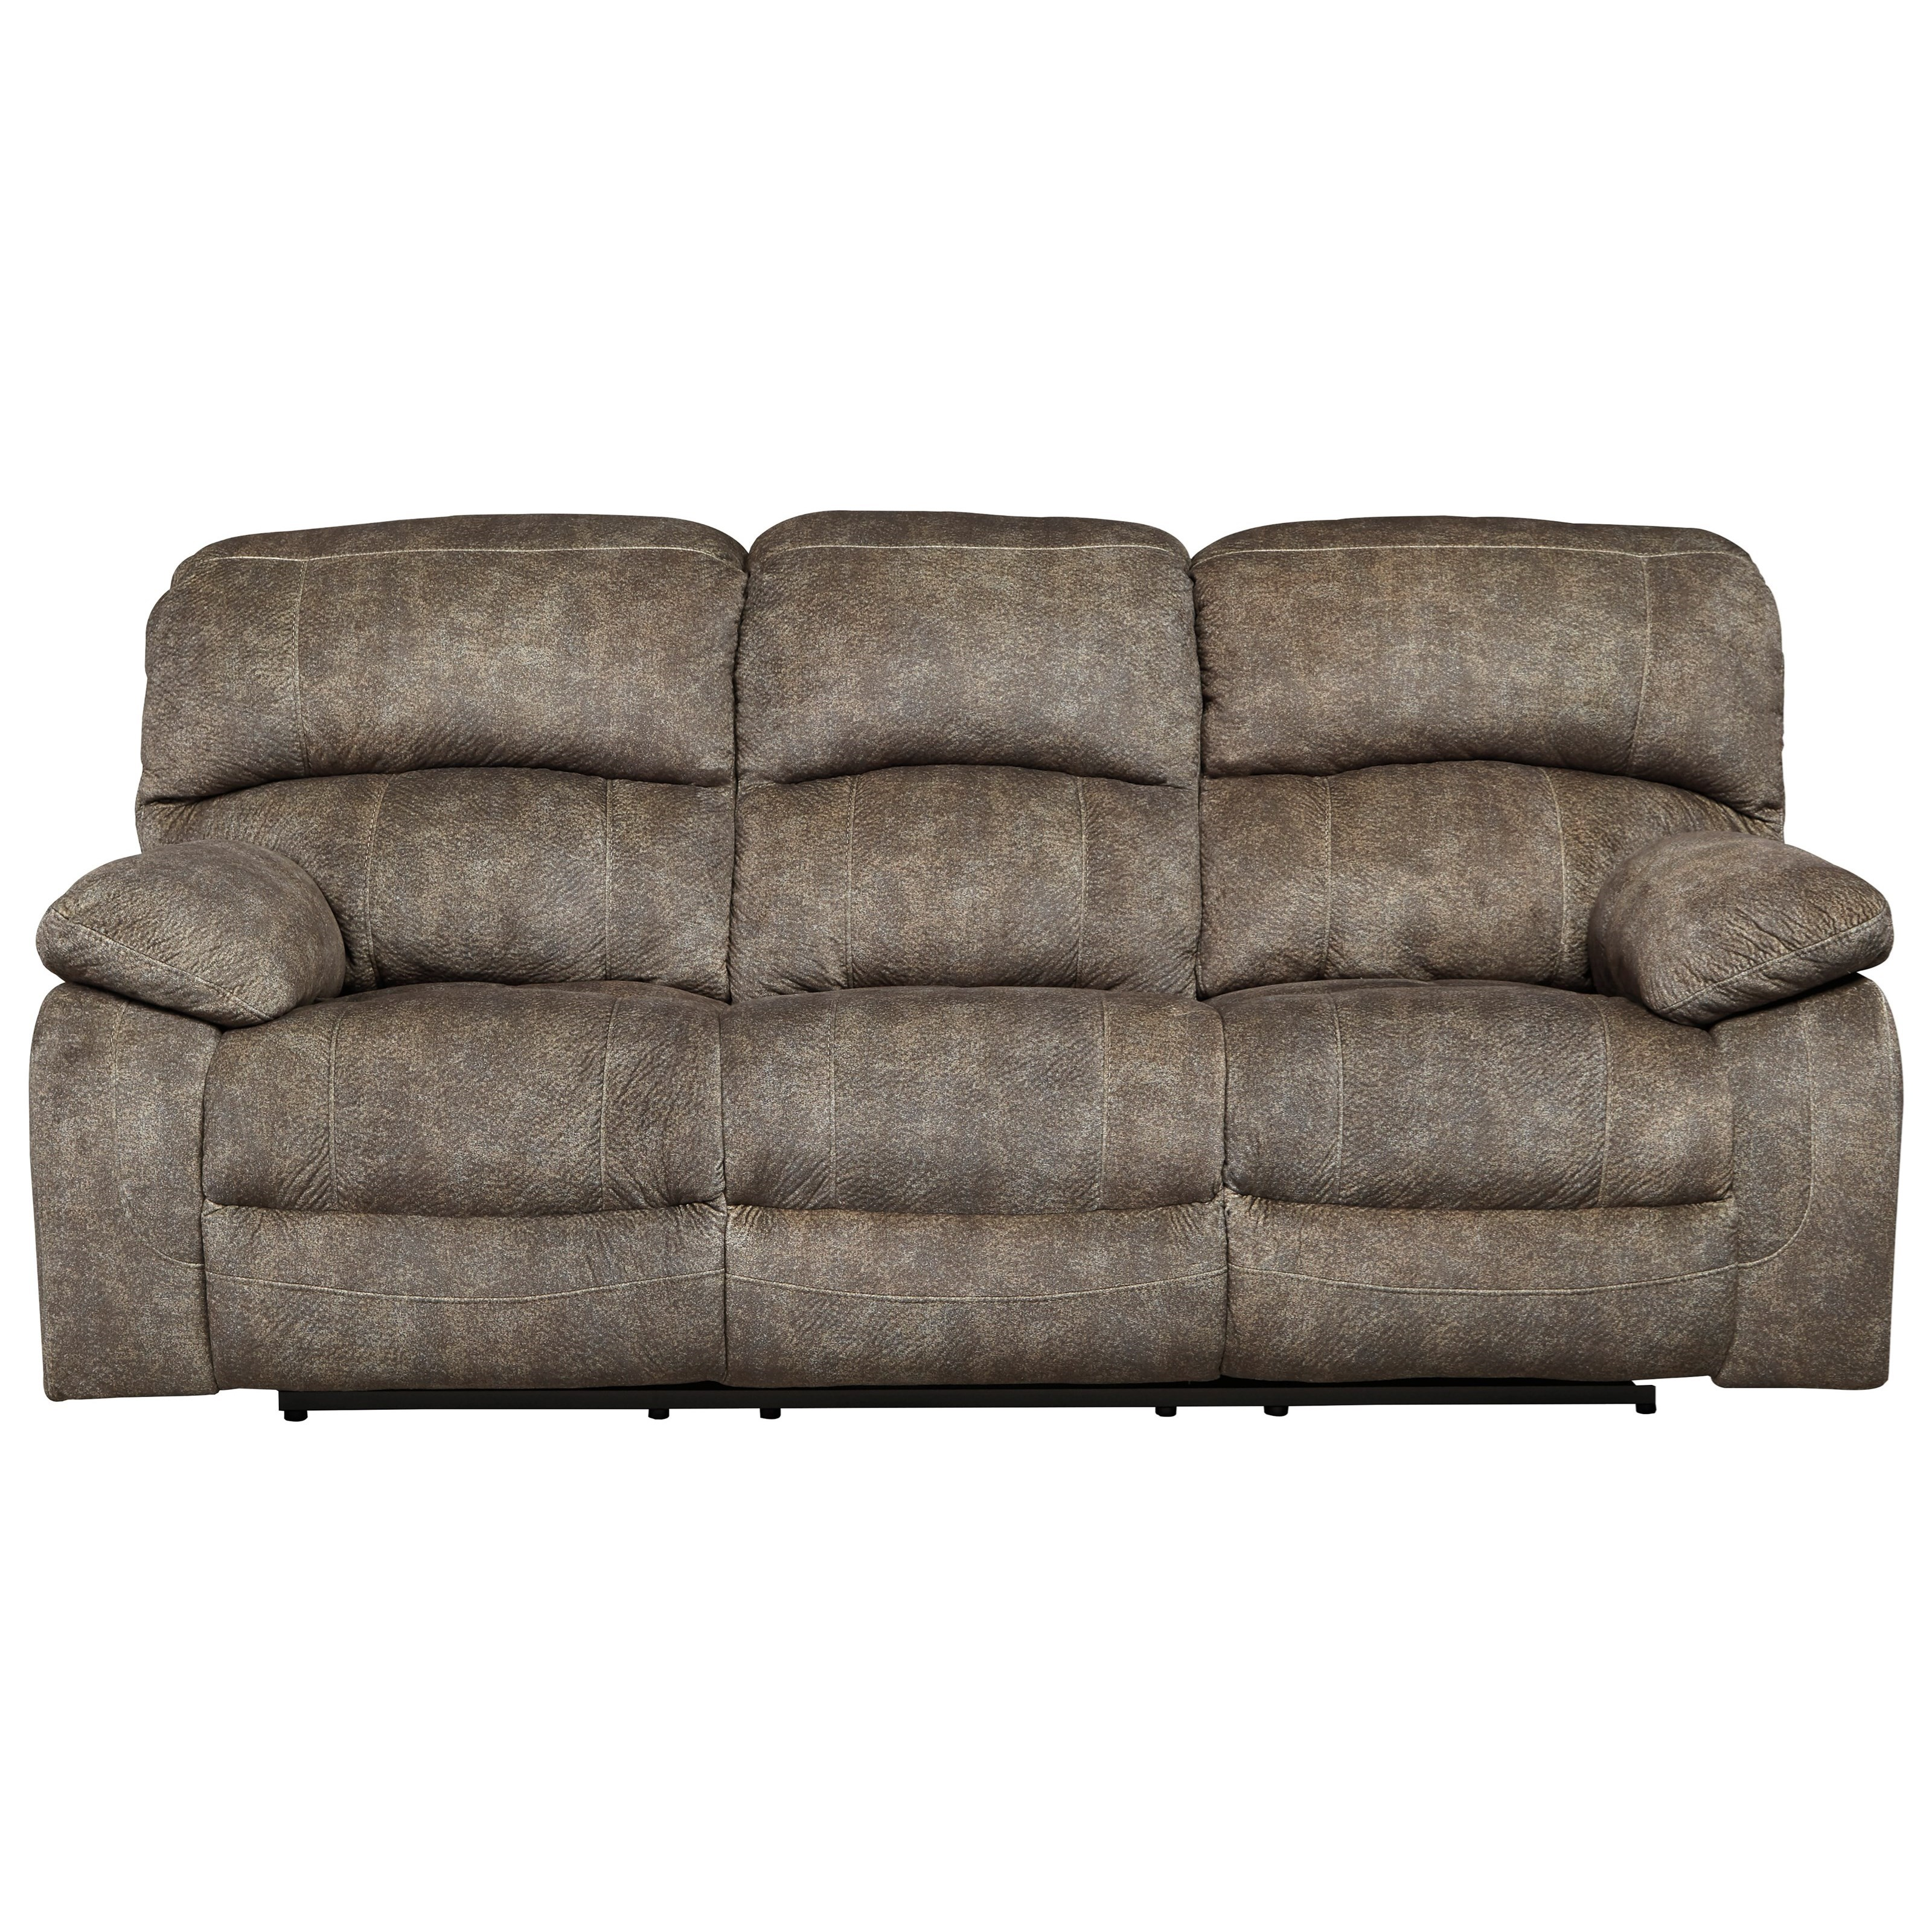 Signature Design by Ashley Cannelton Power Reclining Sofa - Item Number: 1830315